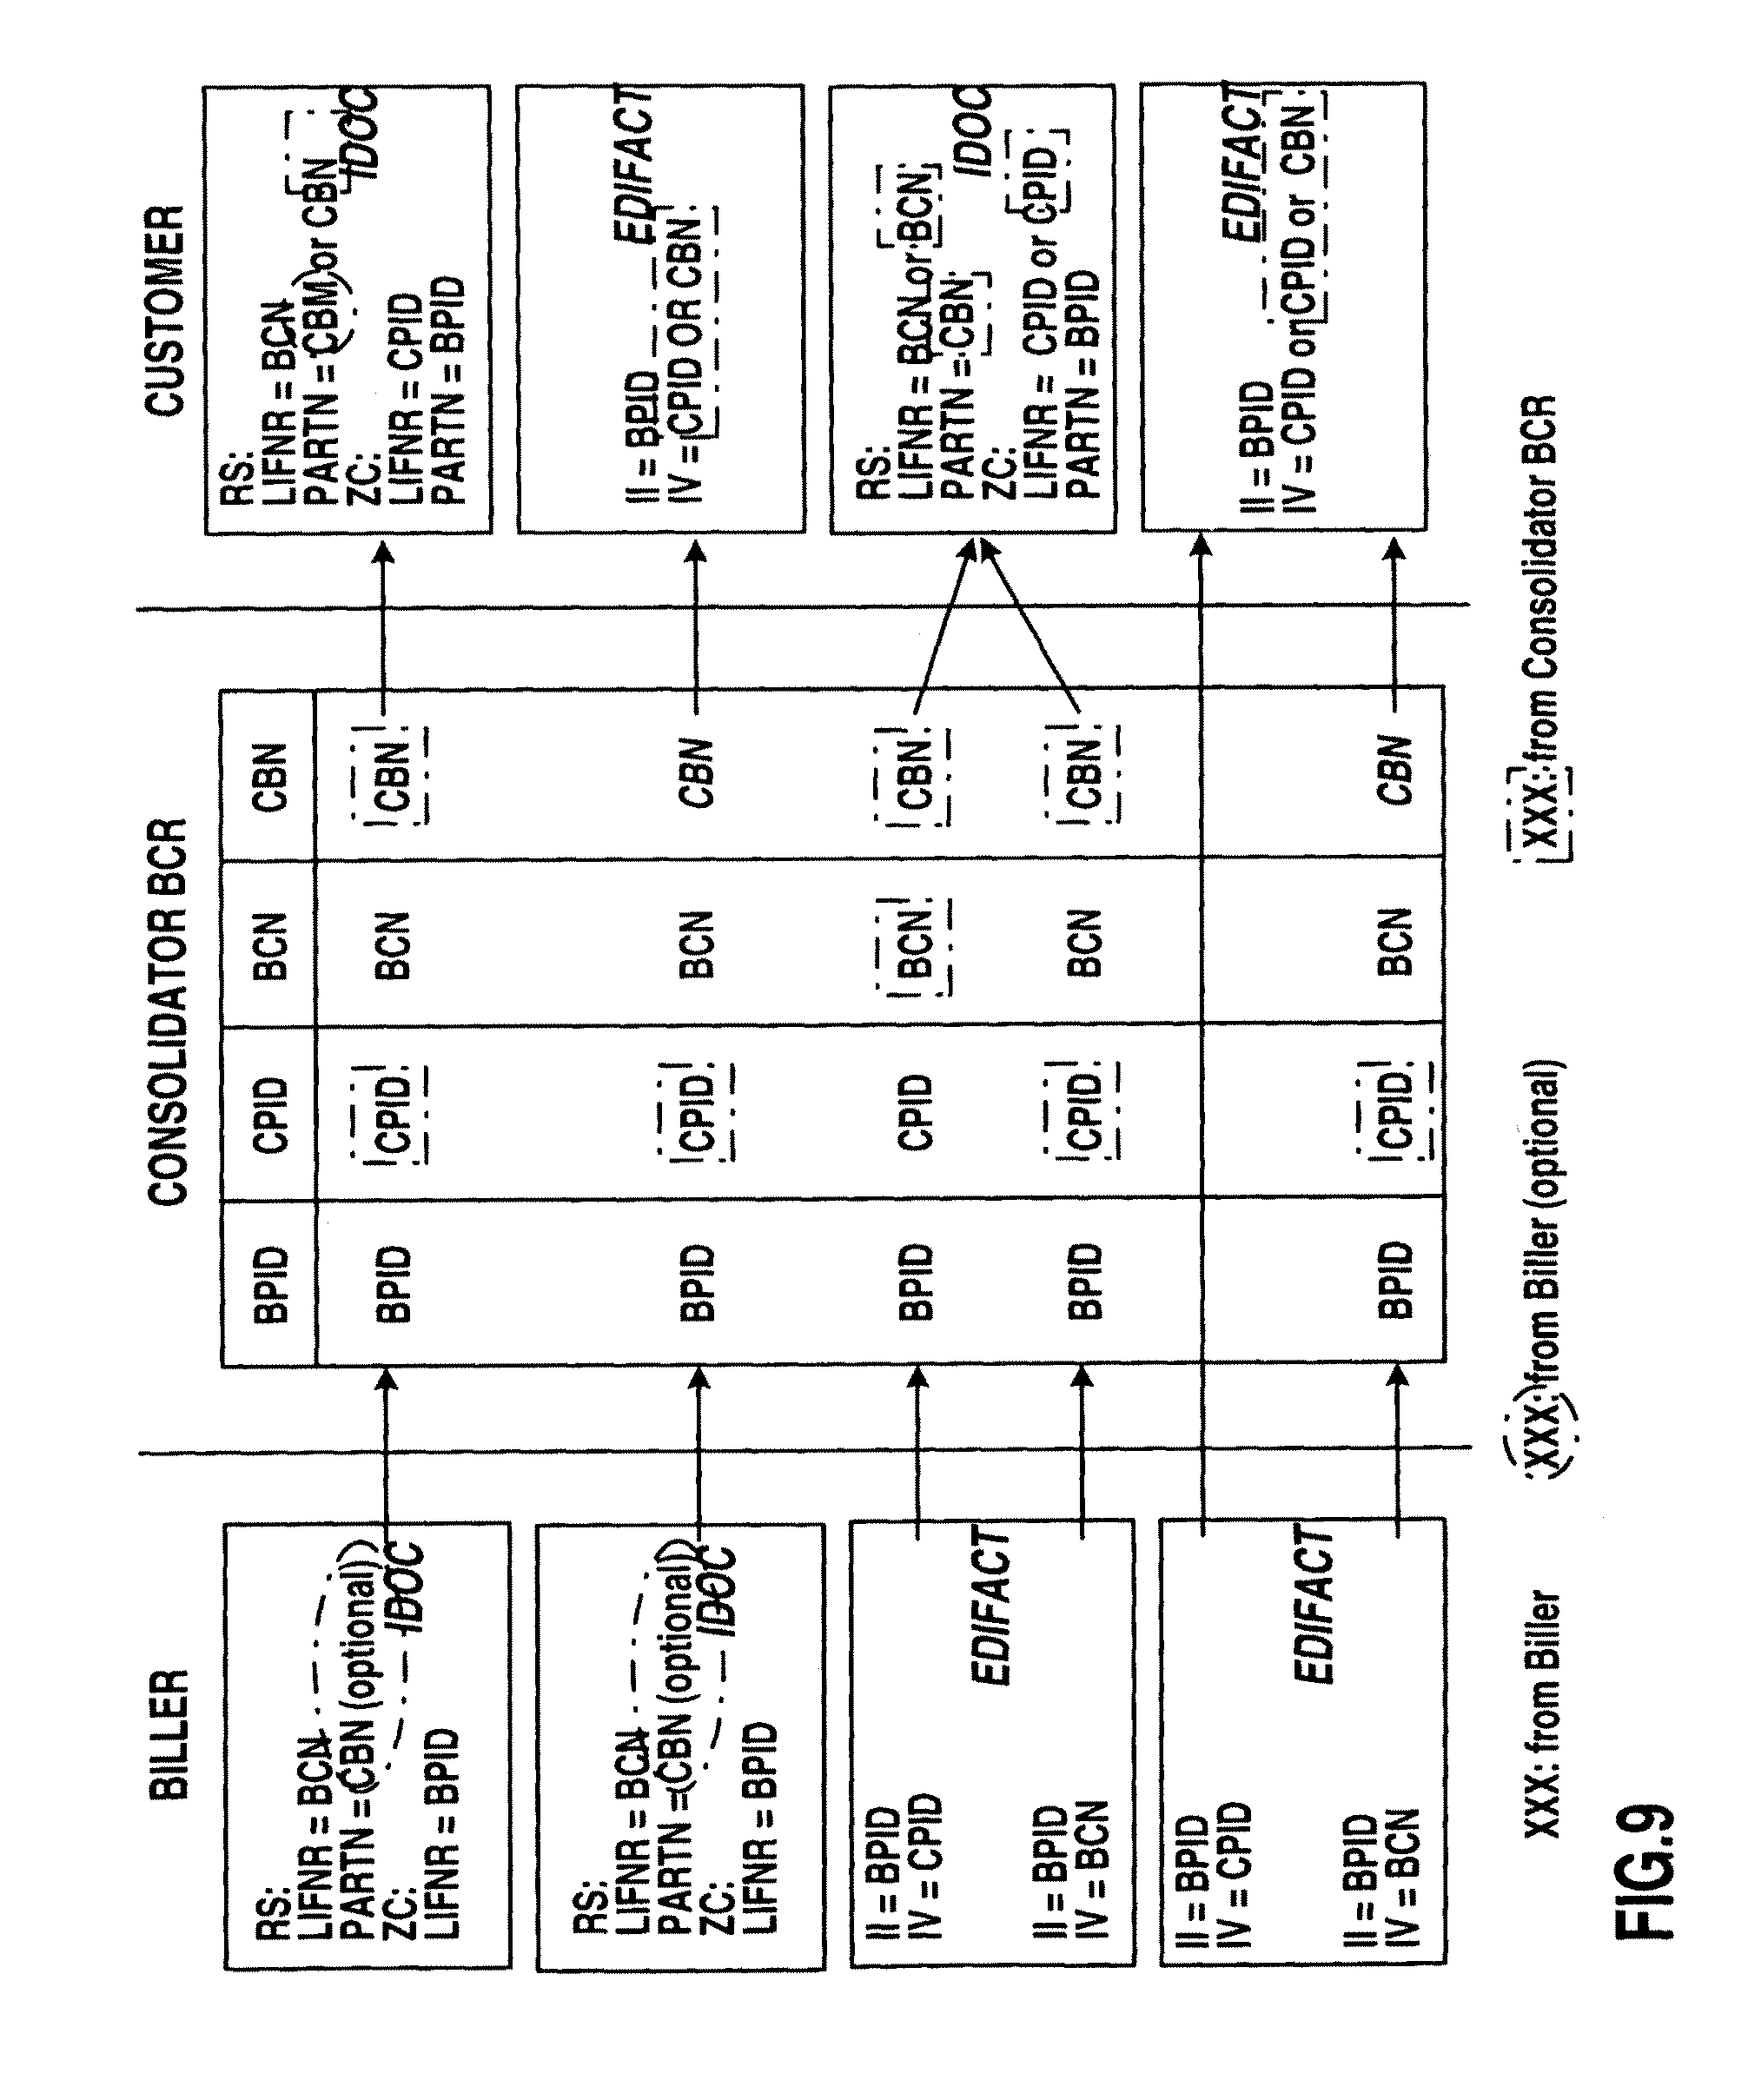 Patent US20140089179 - Methods and systems for electronic bill